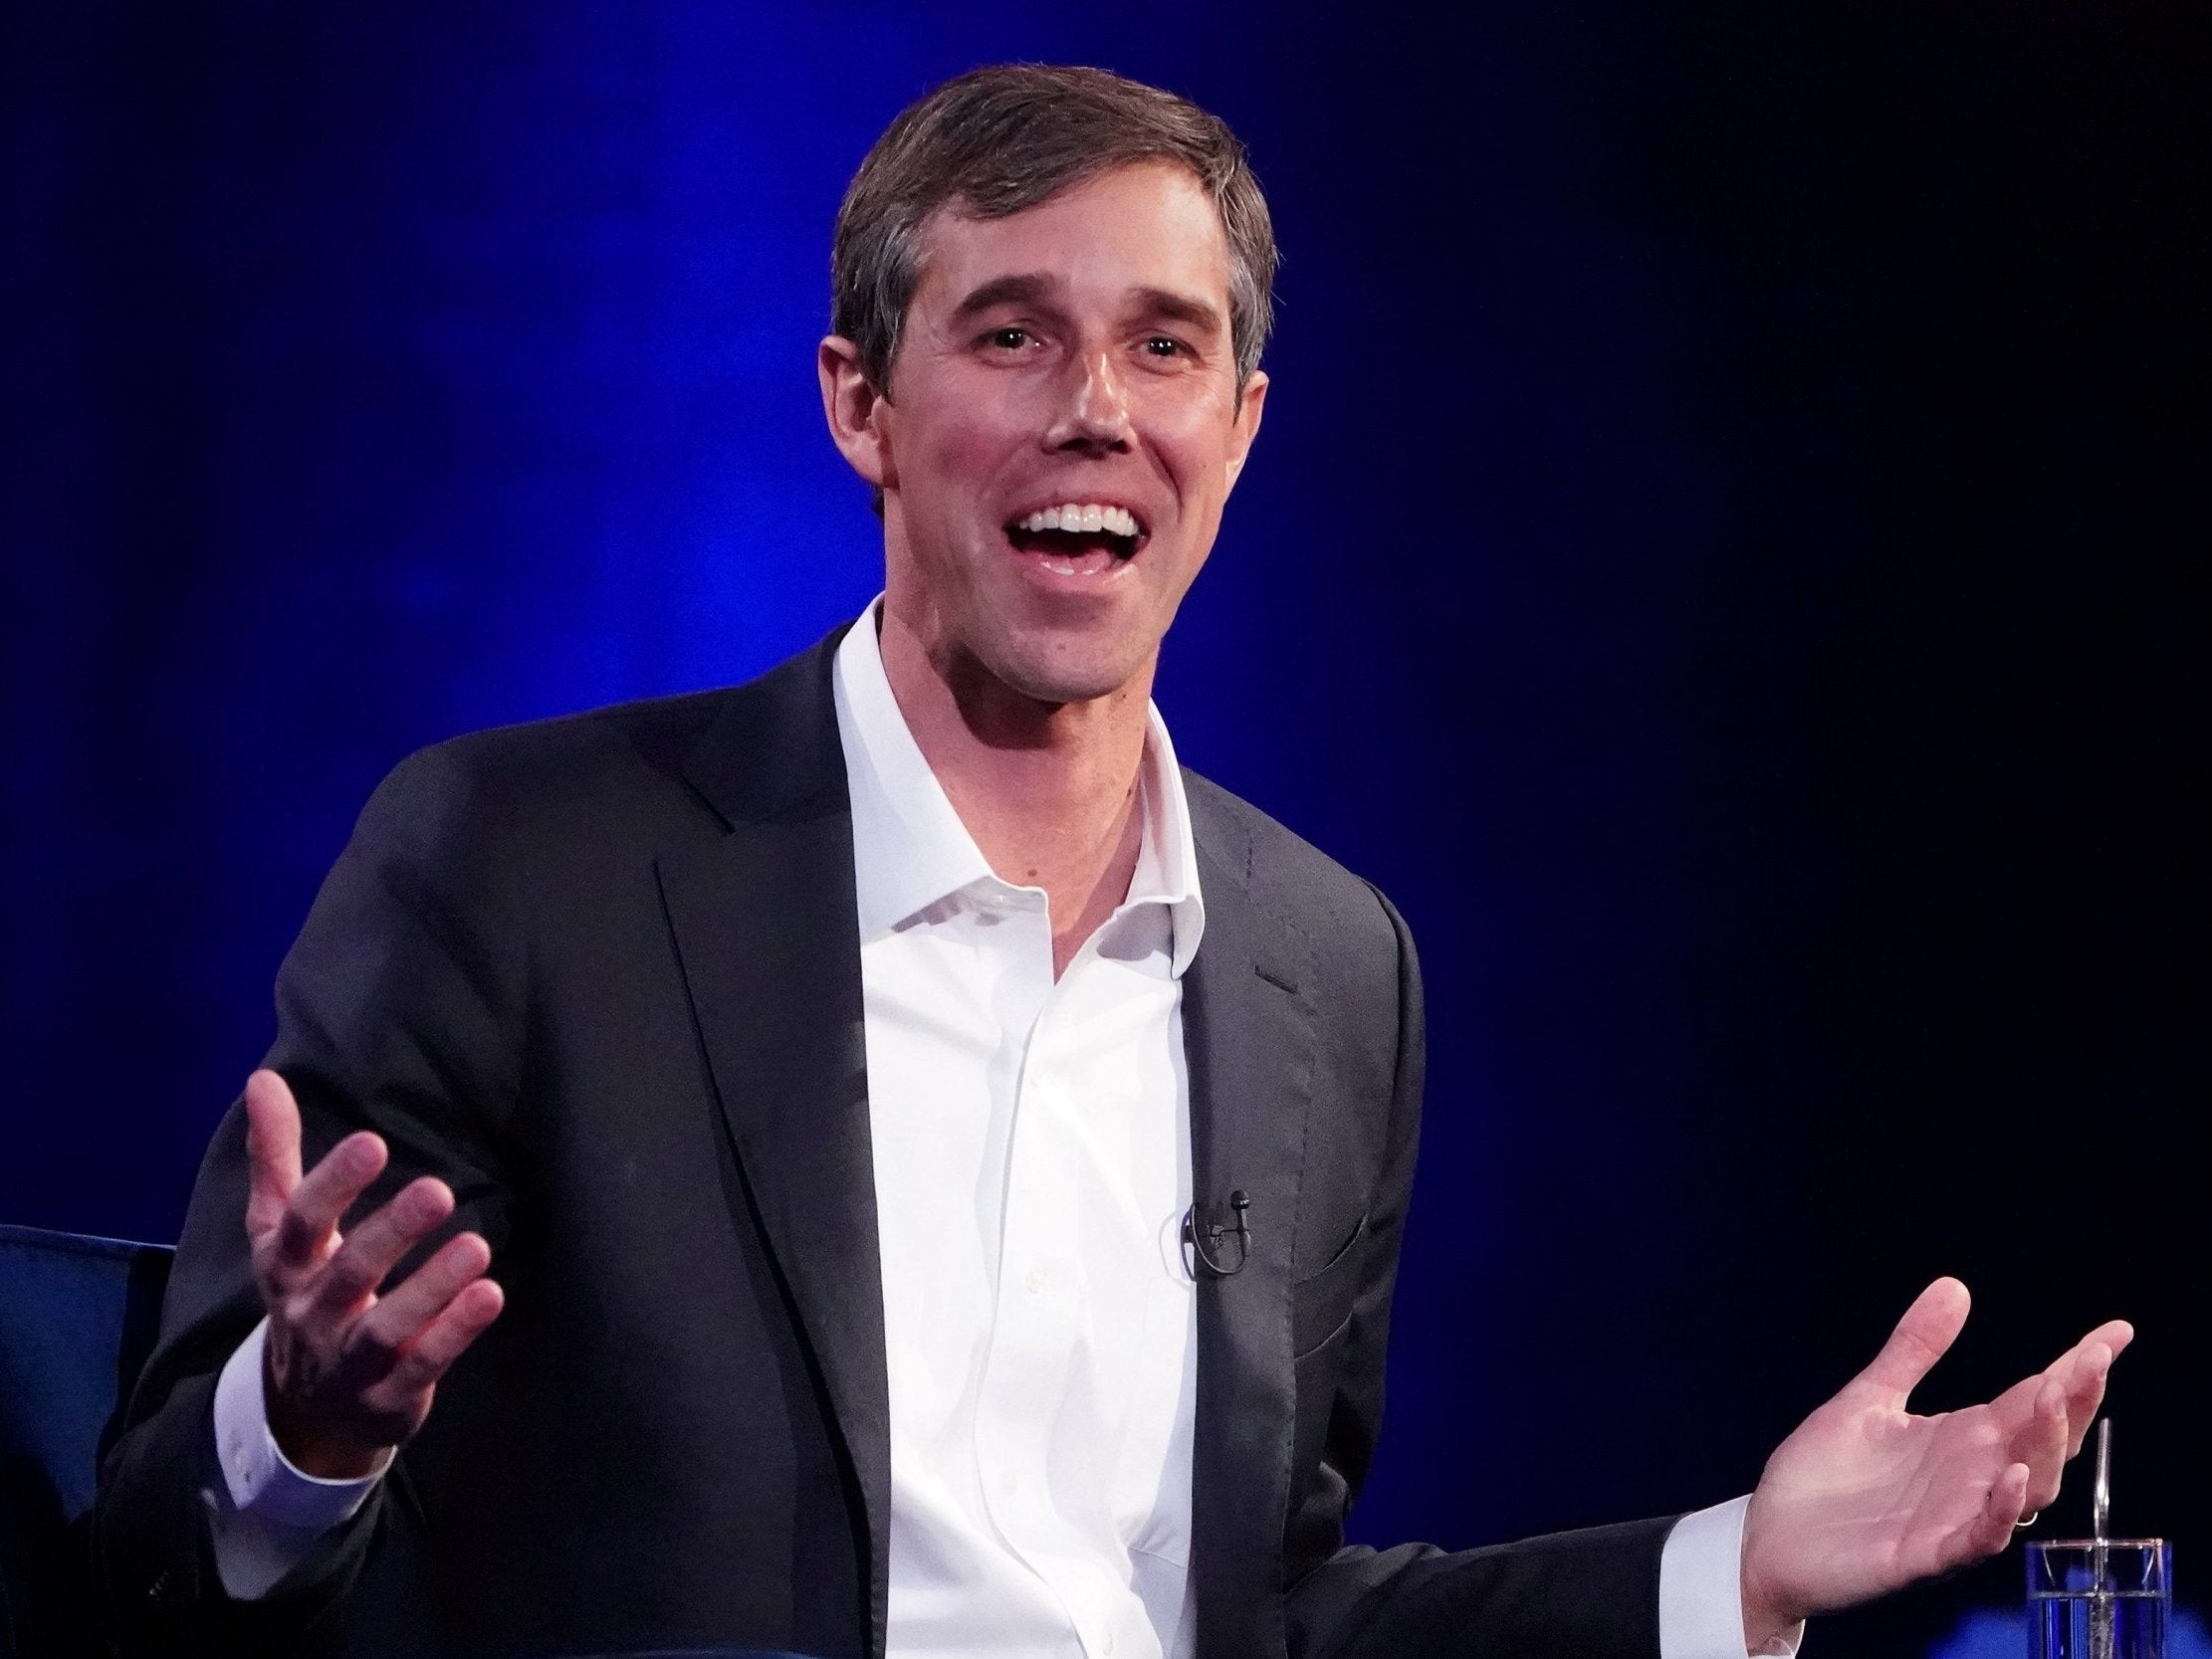 Beto O'Rourke says he will seek Democratic nomination for 2020 presidential run